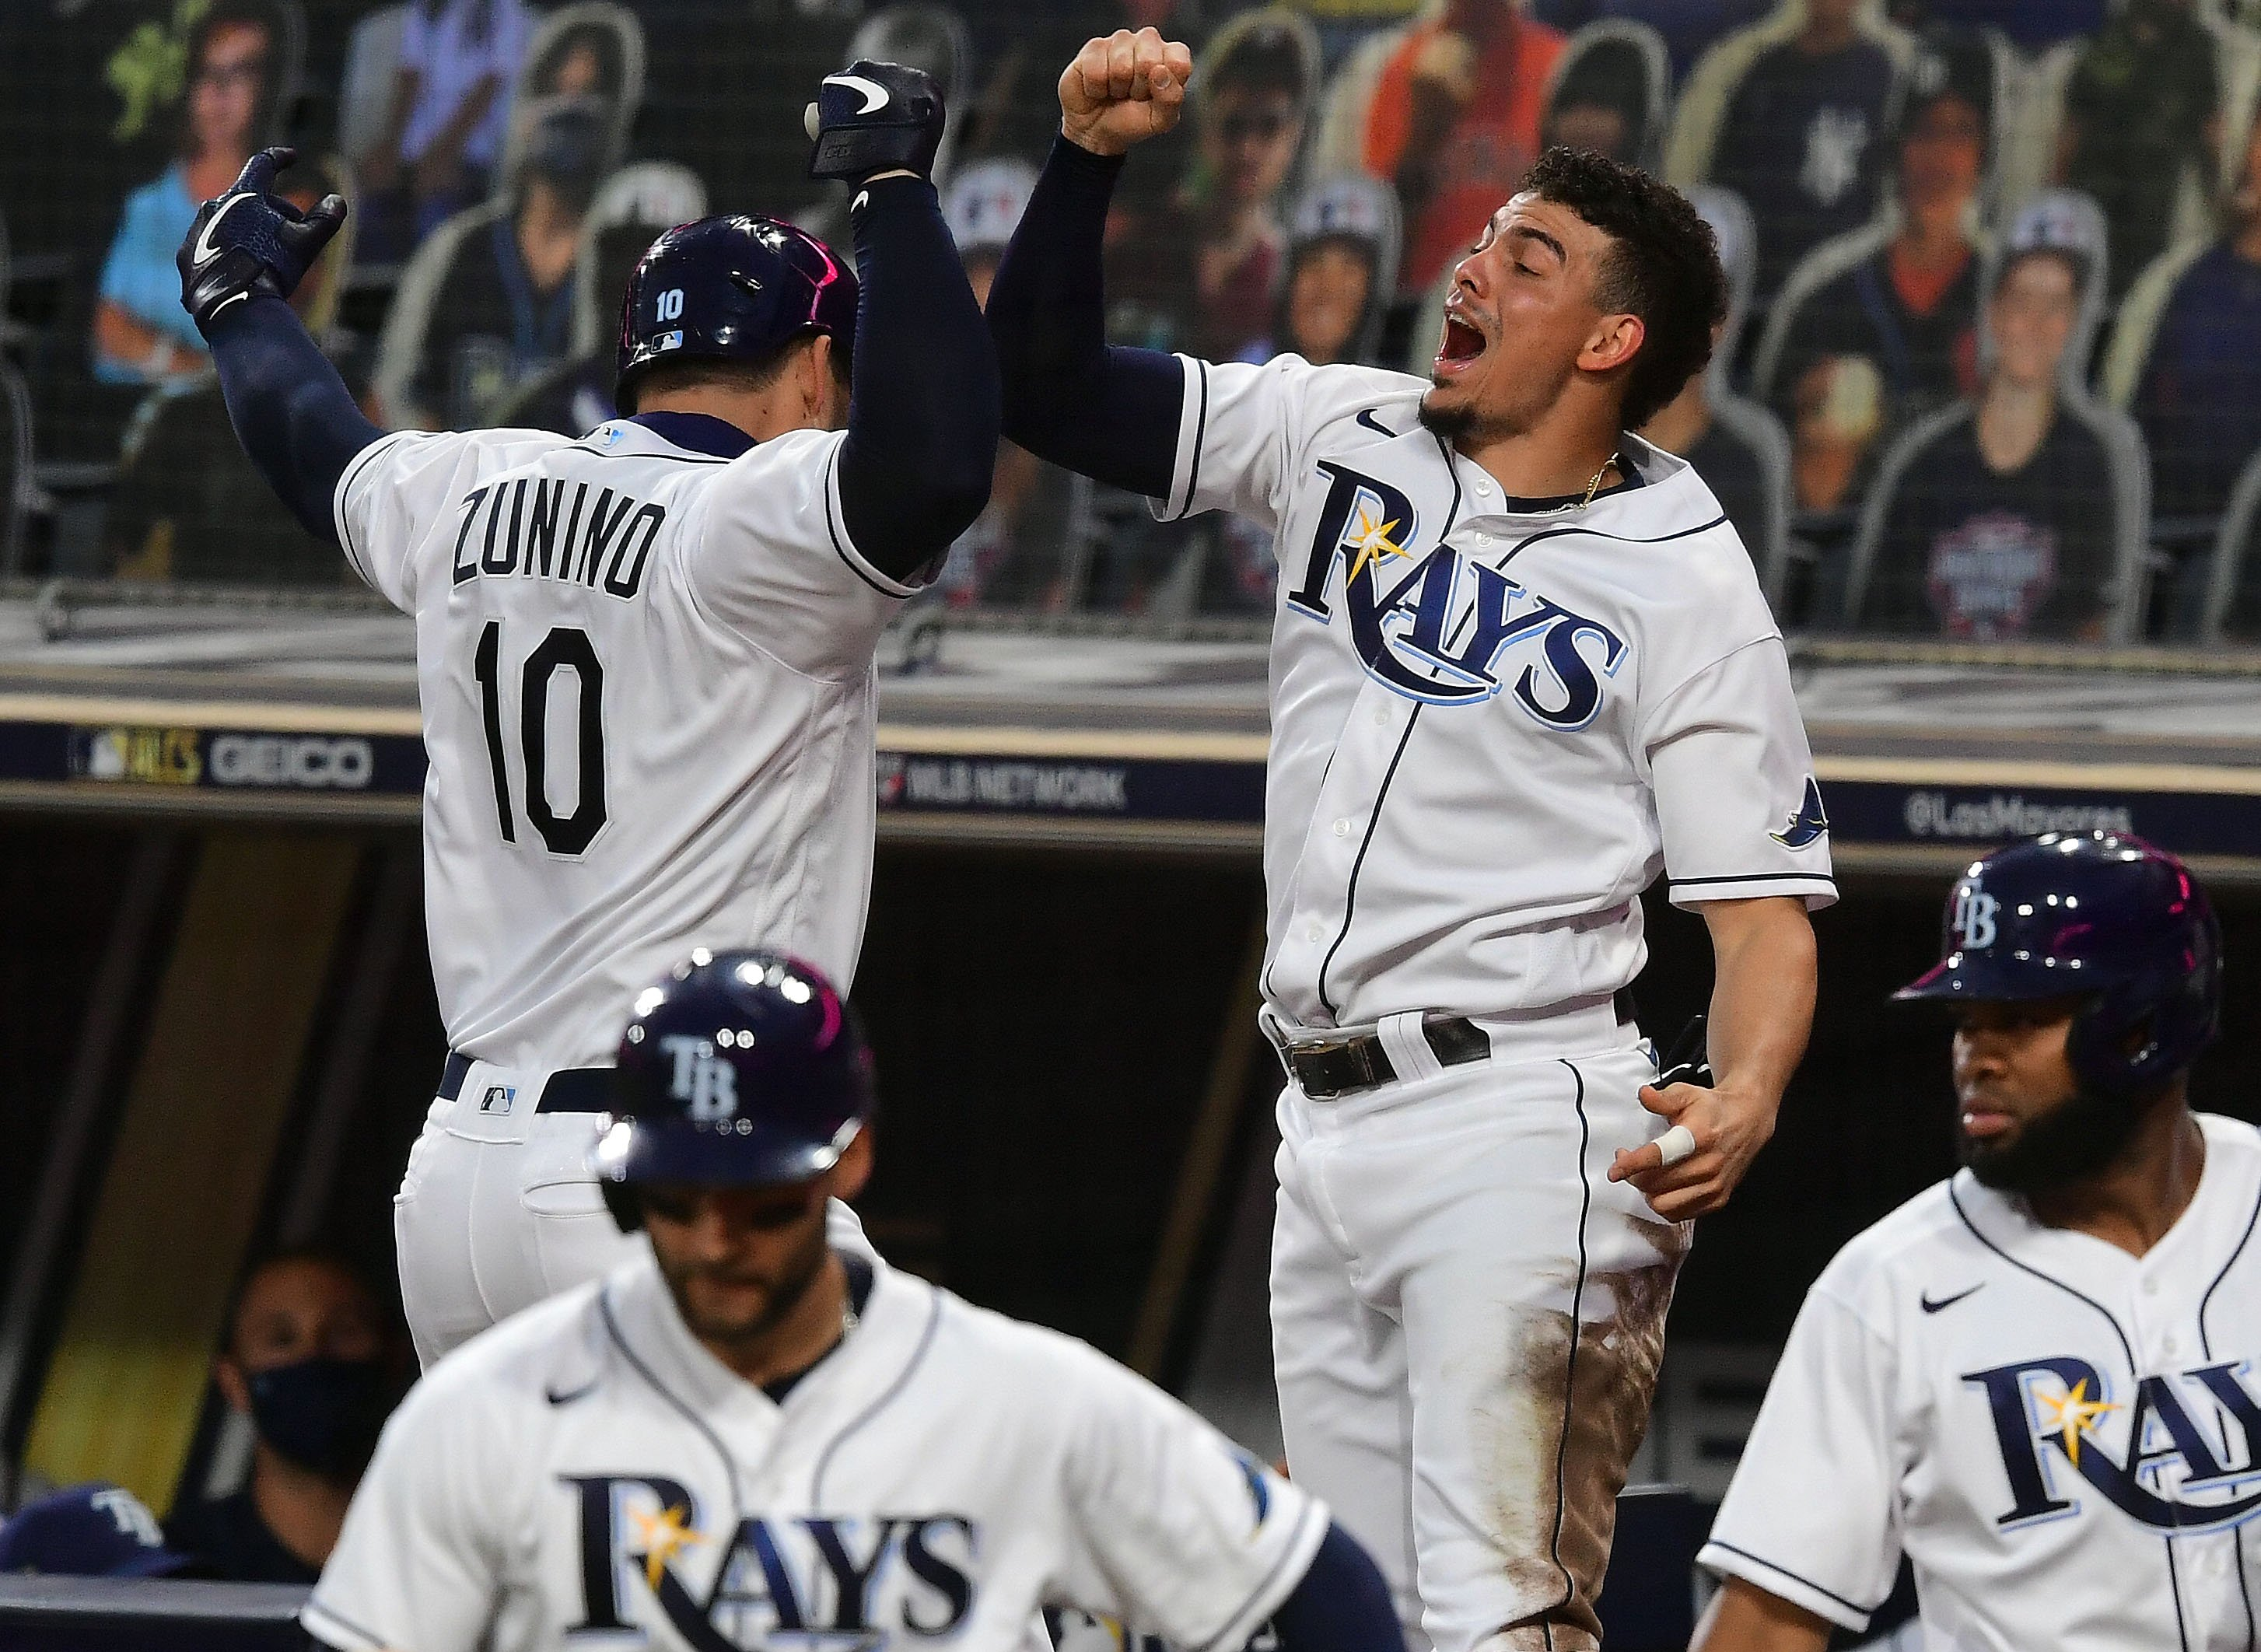 Tampa Bay Rays win American League pennant, will face Dodgers or Braves in  World Series